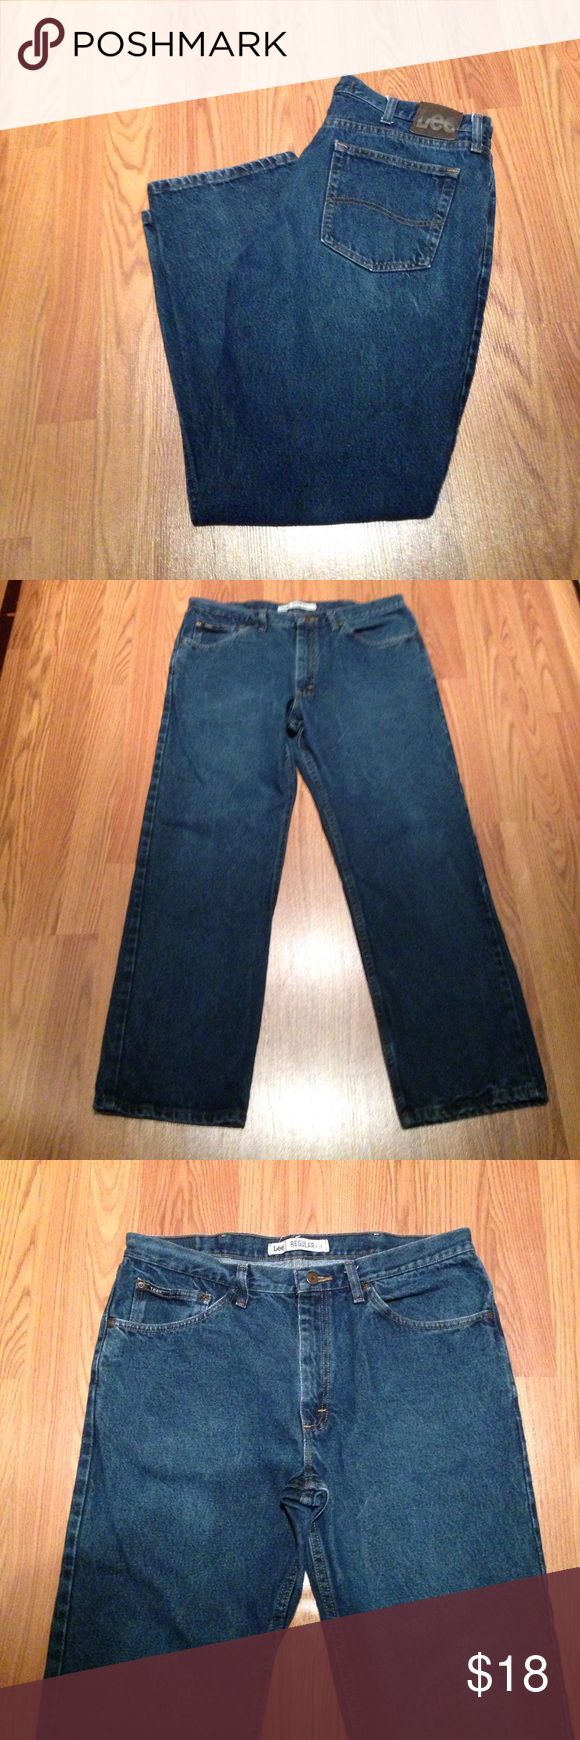 Men's Lee Jeans Men's 38 x30 Regular fit Lee jeans EUC Lee Jeans